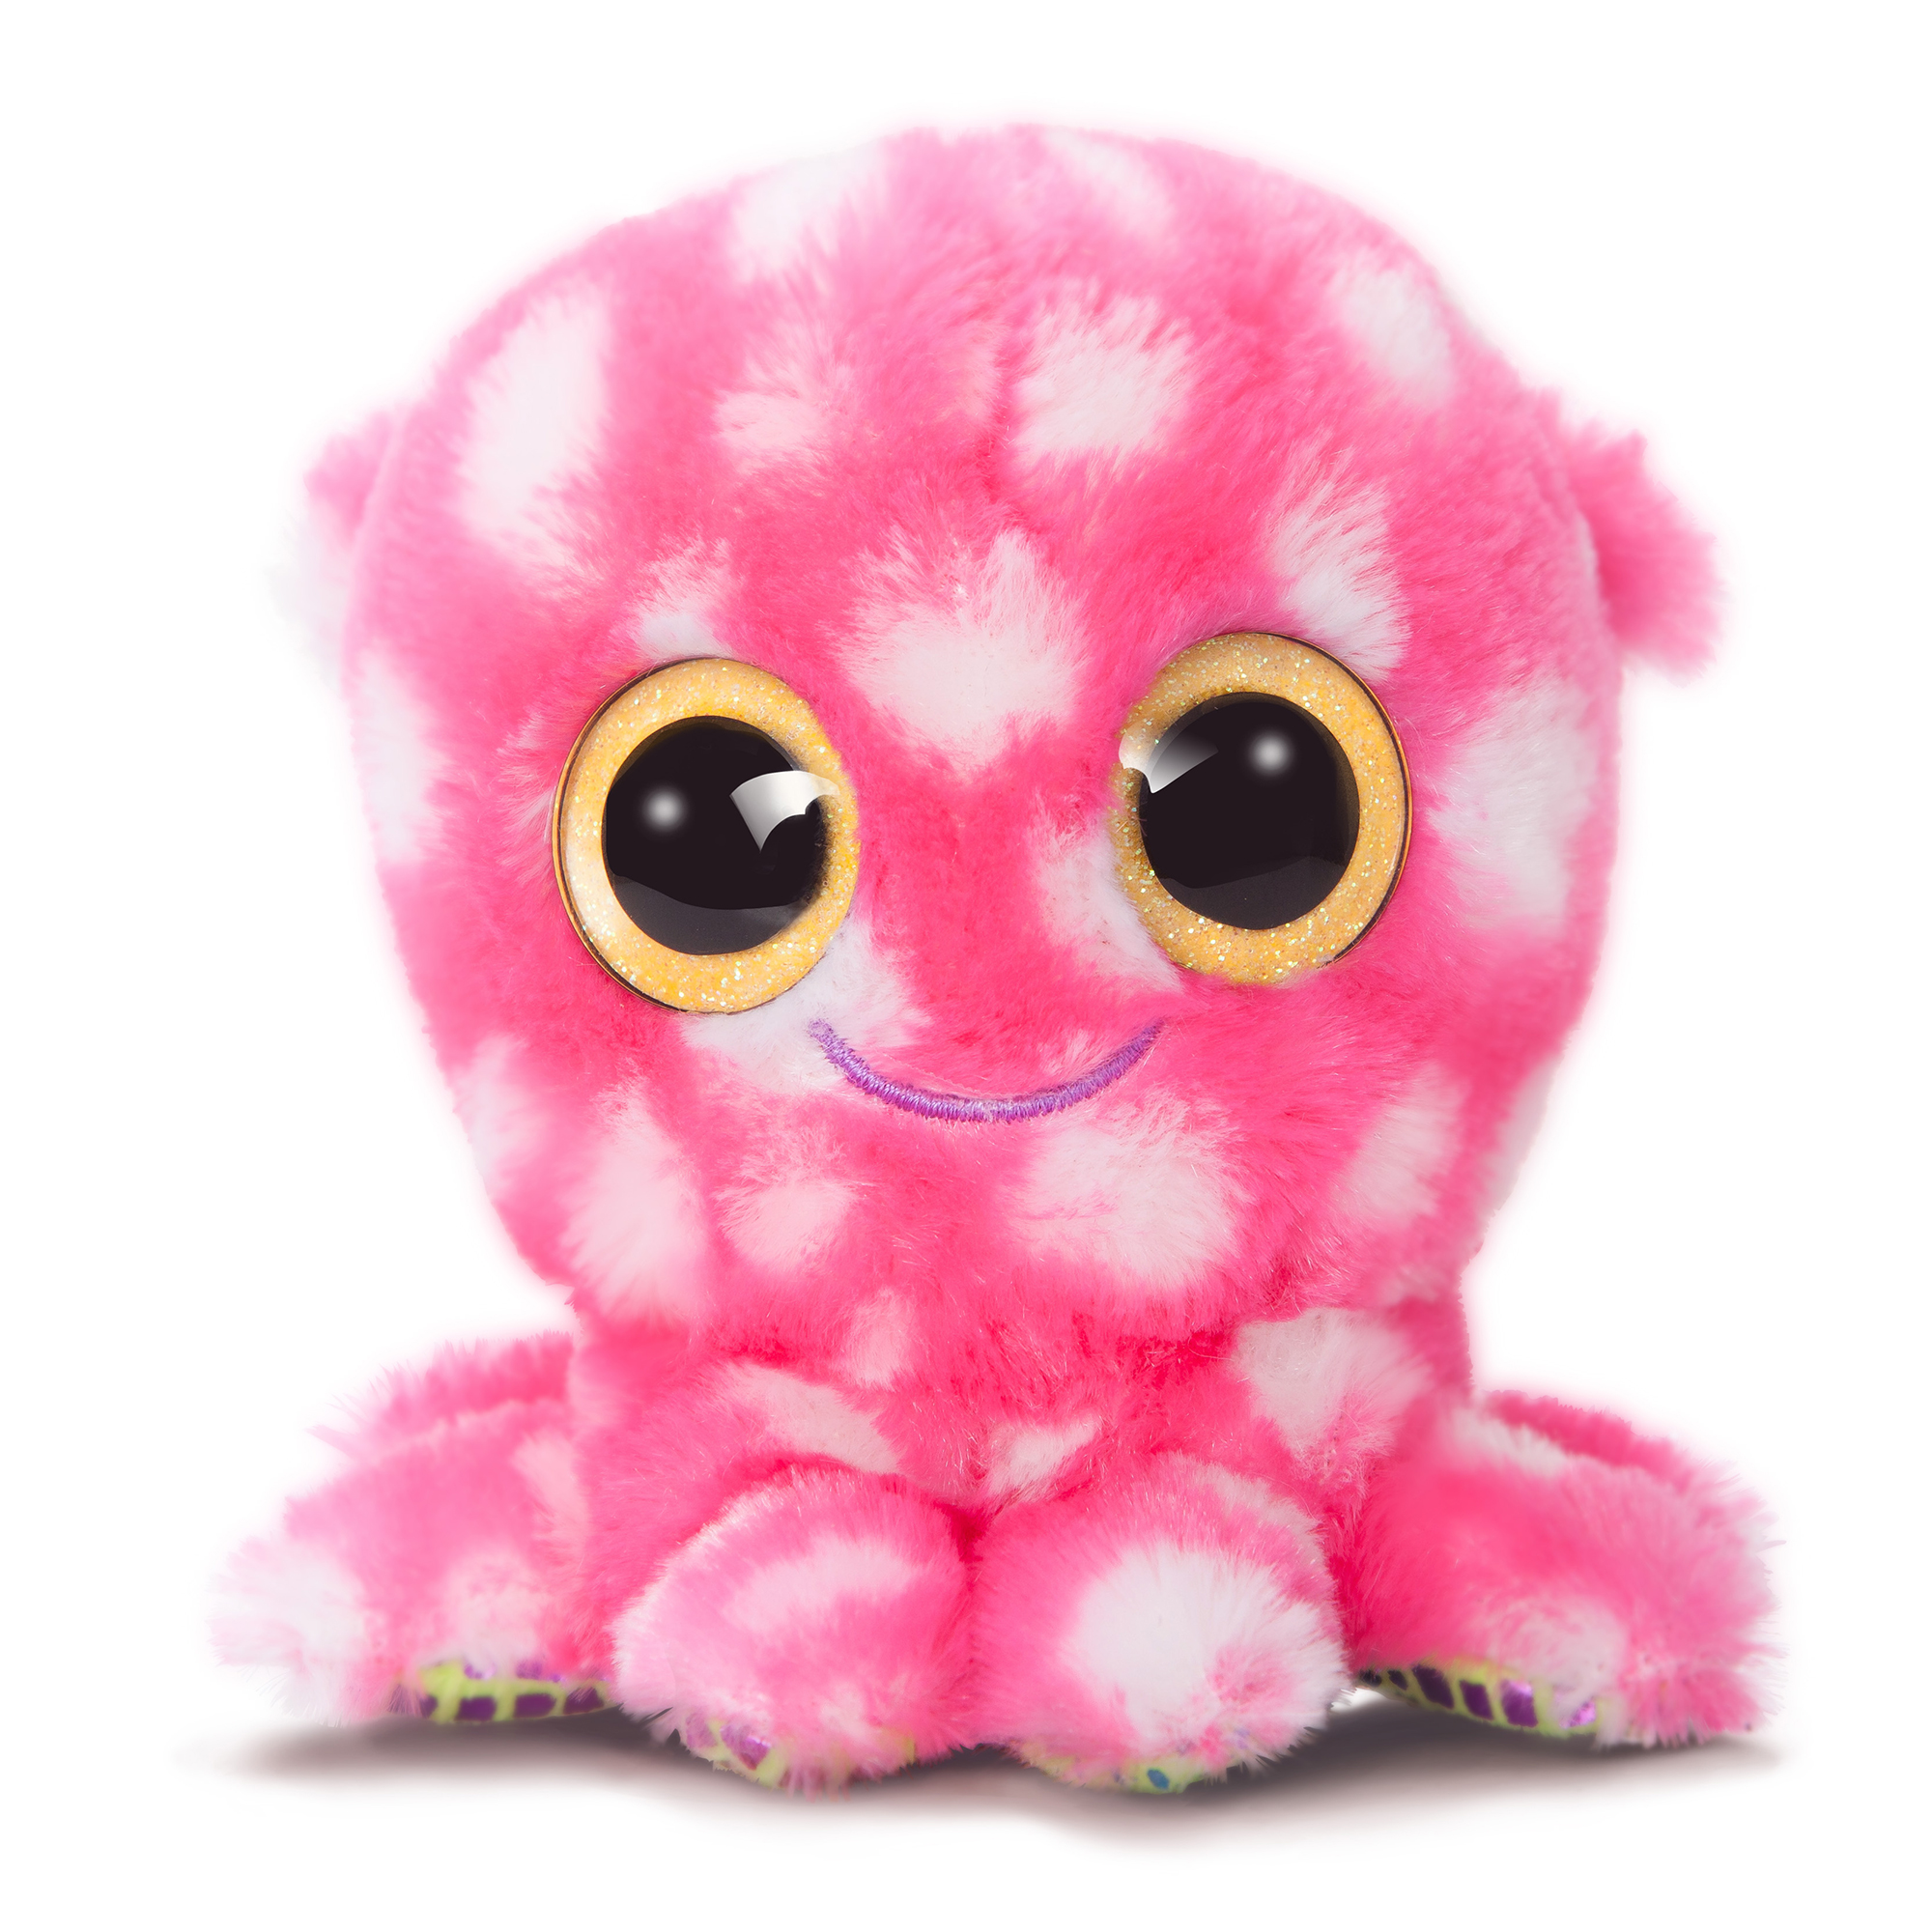 YooHoo & Friends 8-Inch Olee Octopus